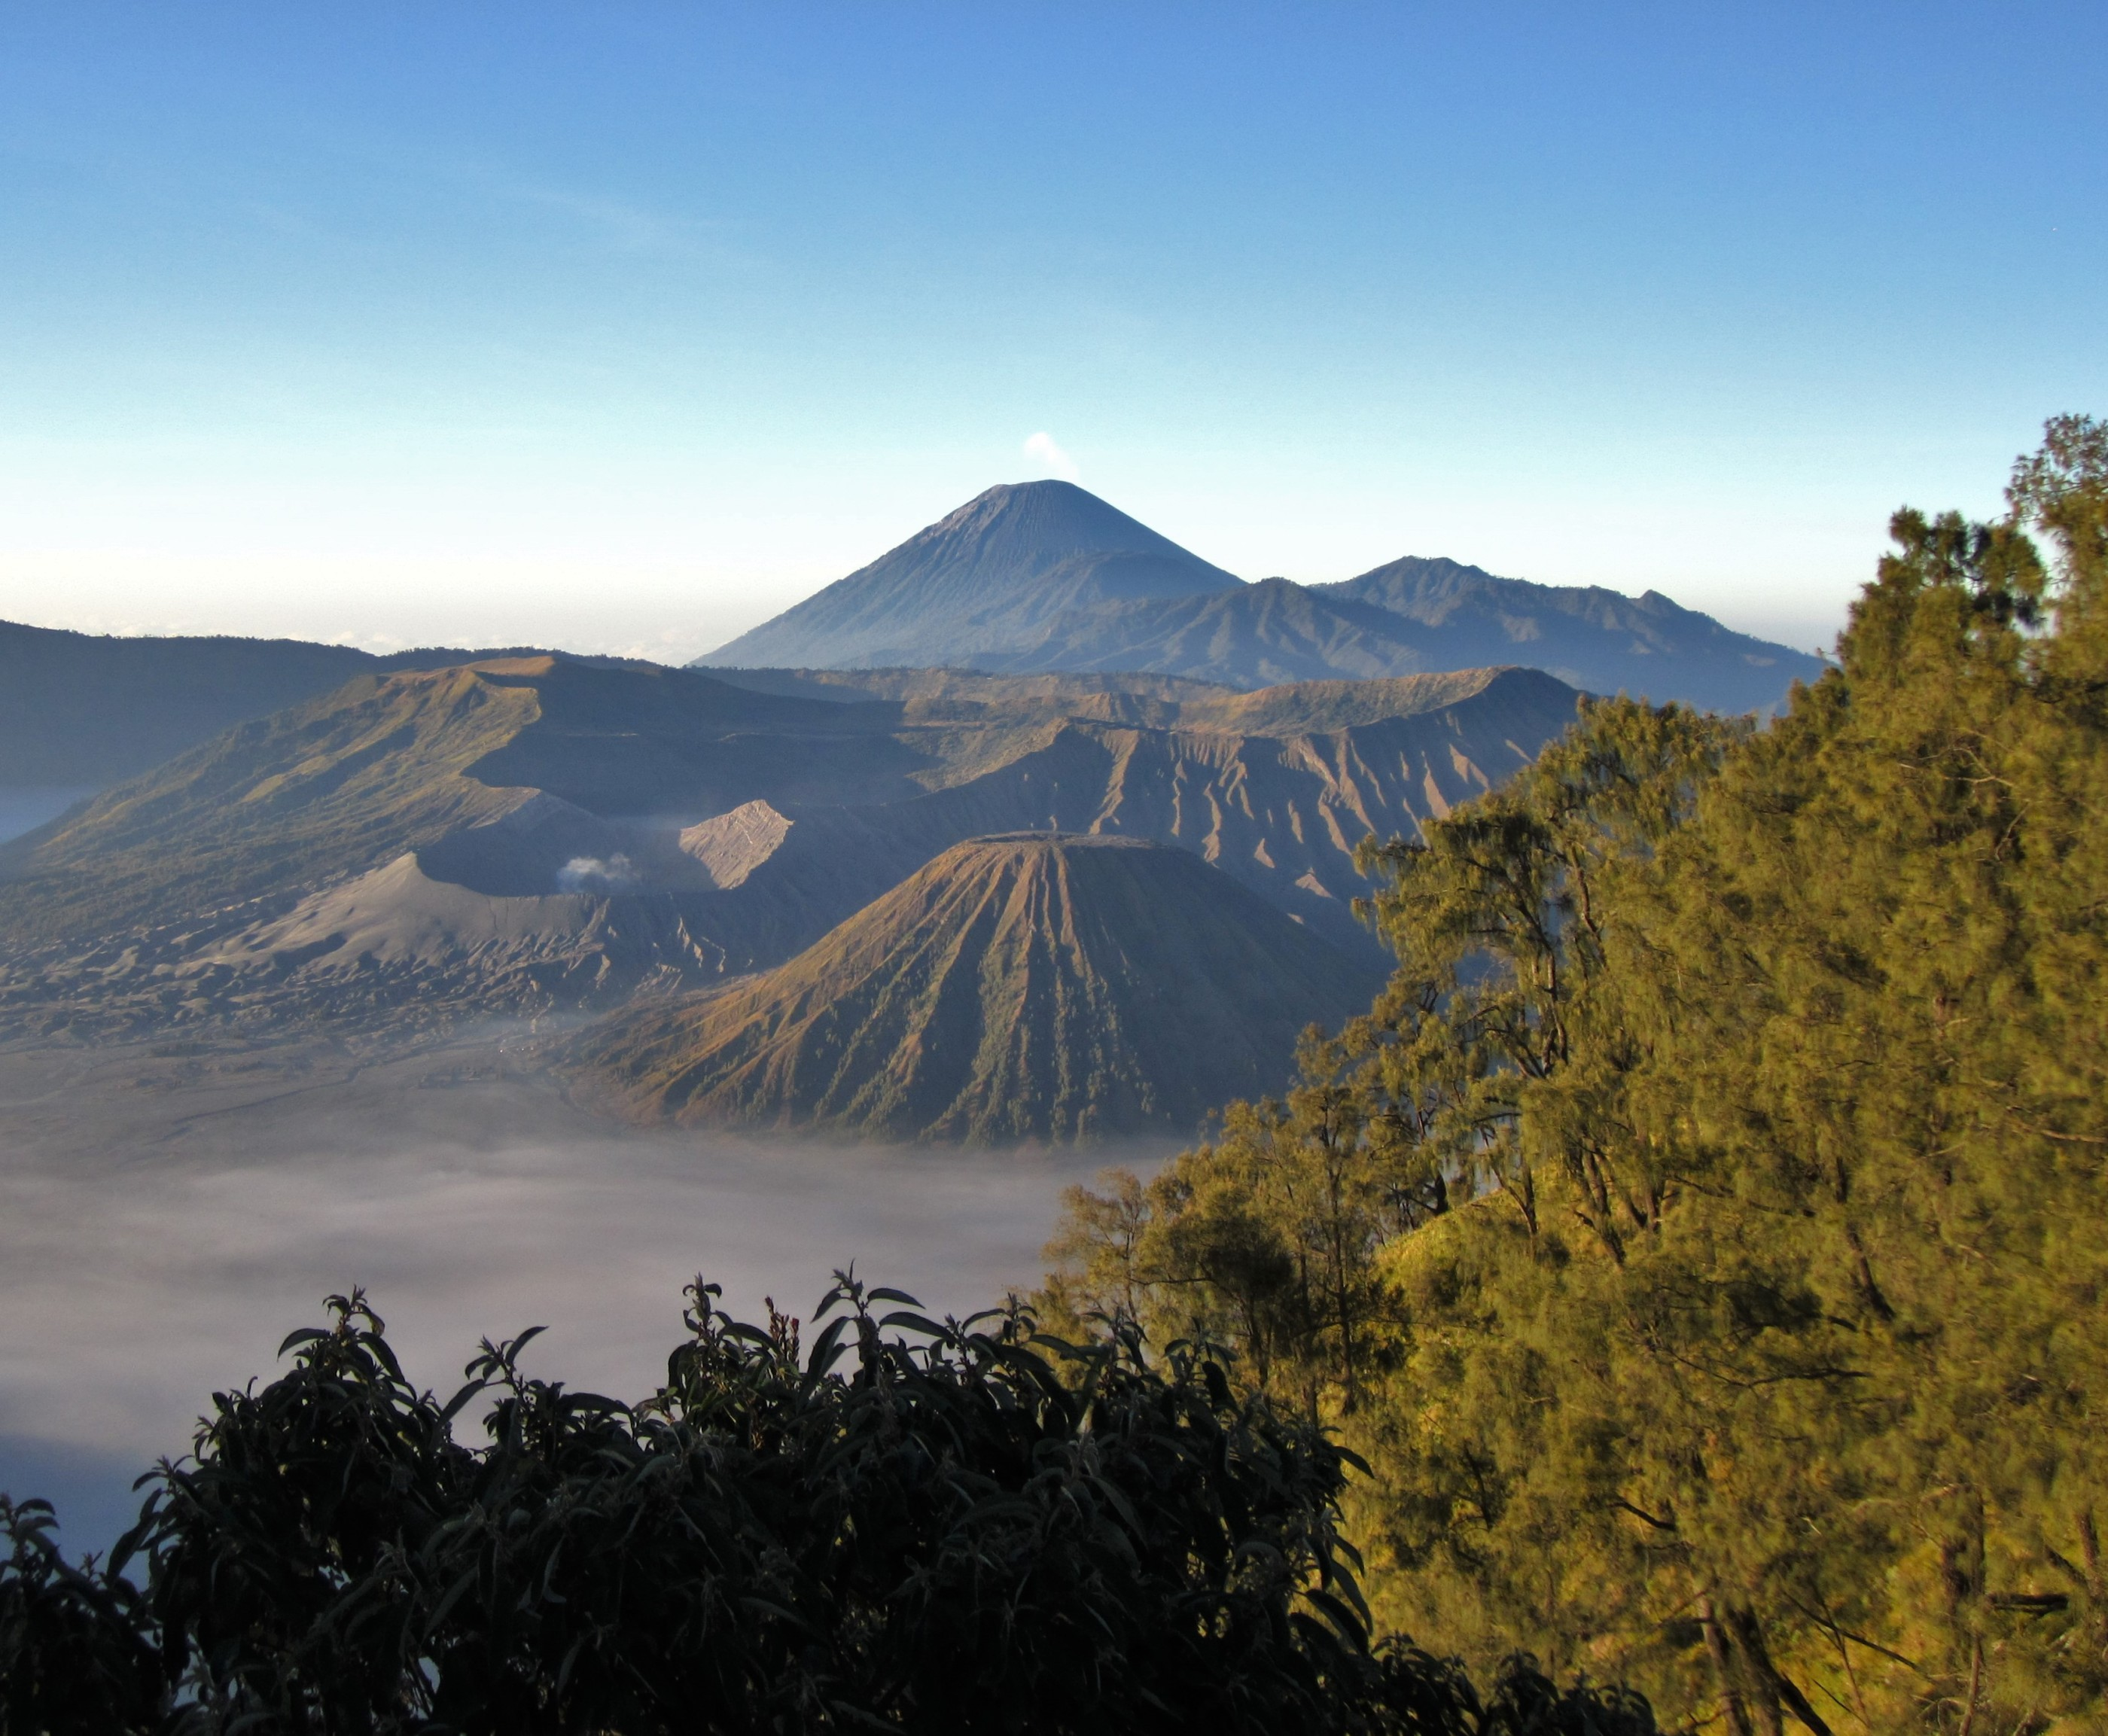 The Tengger Massif, a vast volcanic landscape in East Java, Indonesia